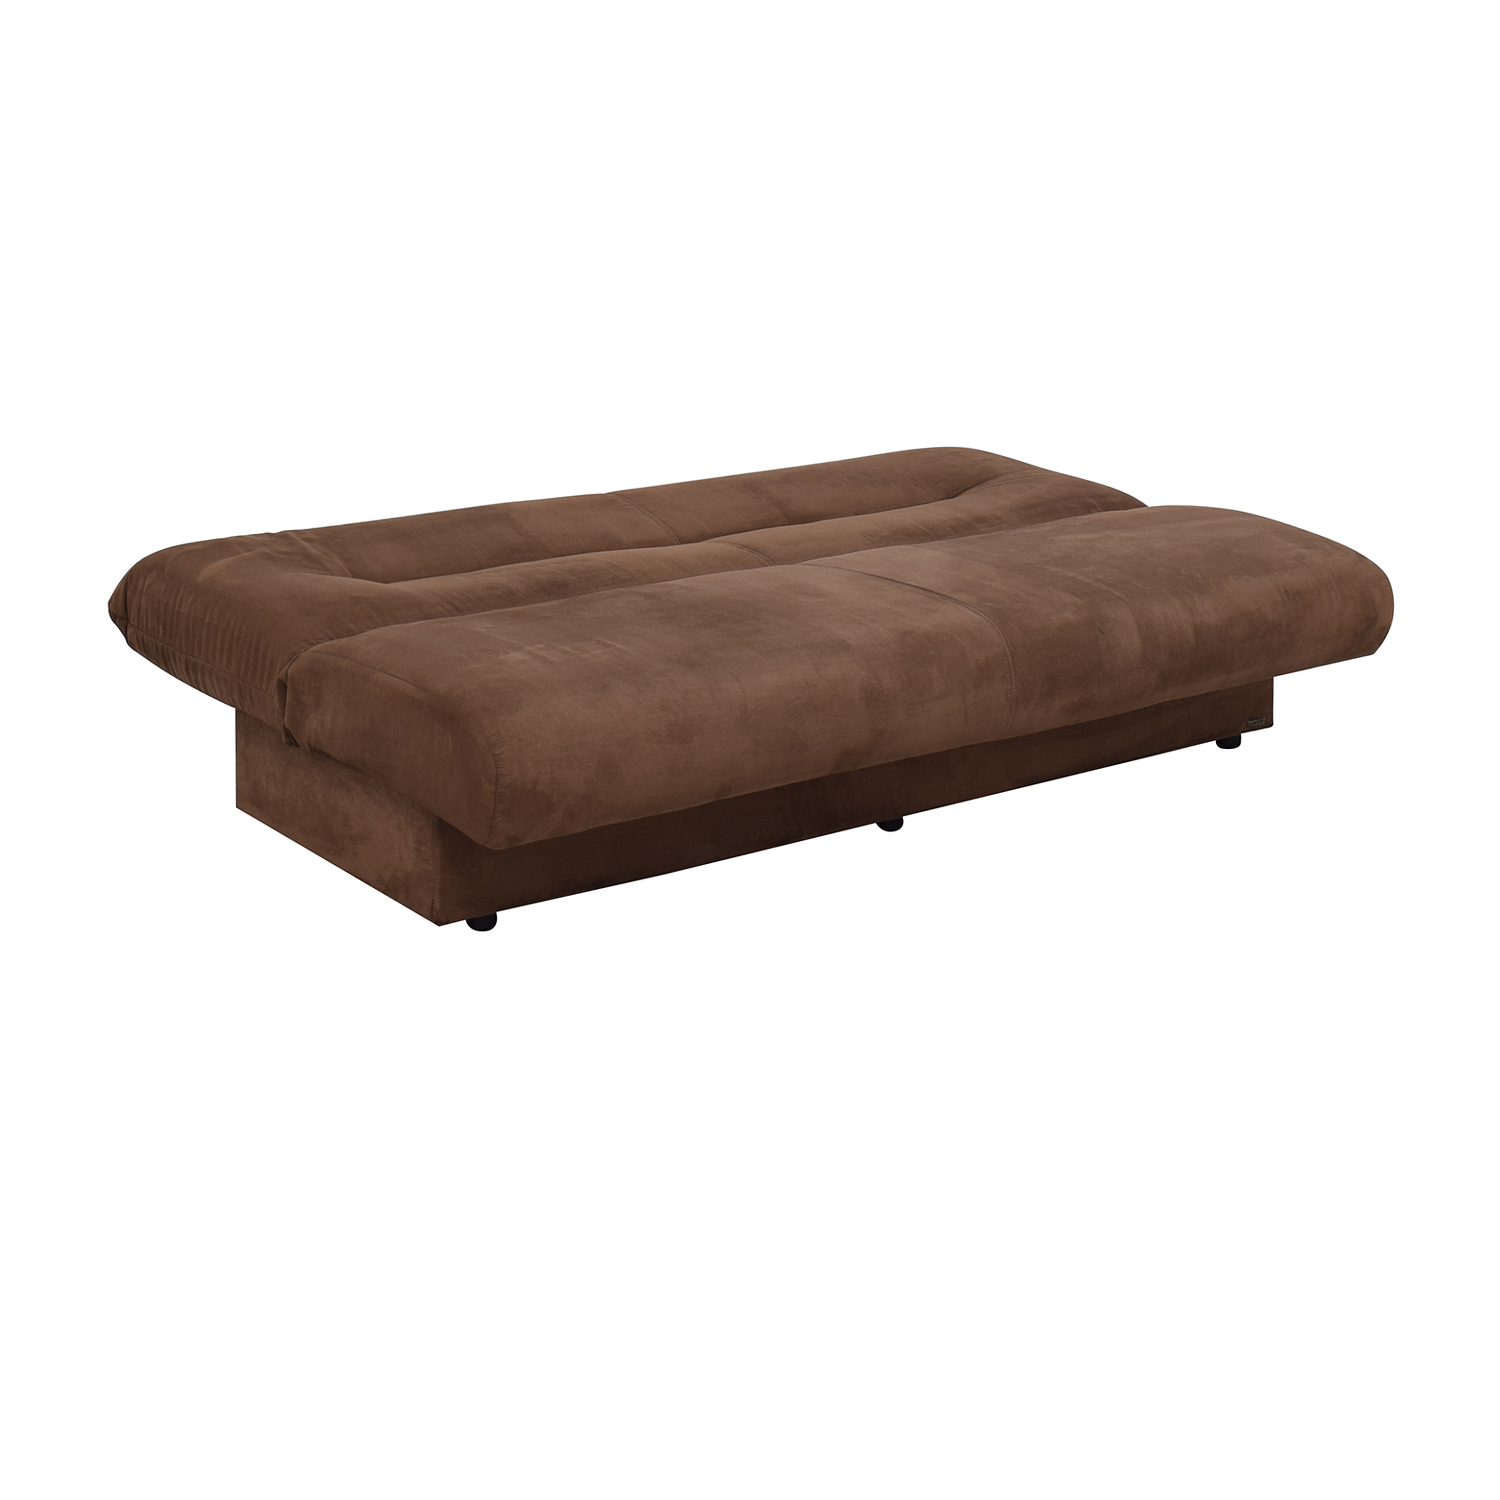 83% OFF   Istikbal Istikbal Furniture Regata Diego Convertible Full Sofa  Bed / Sofas